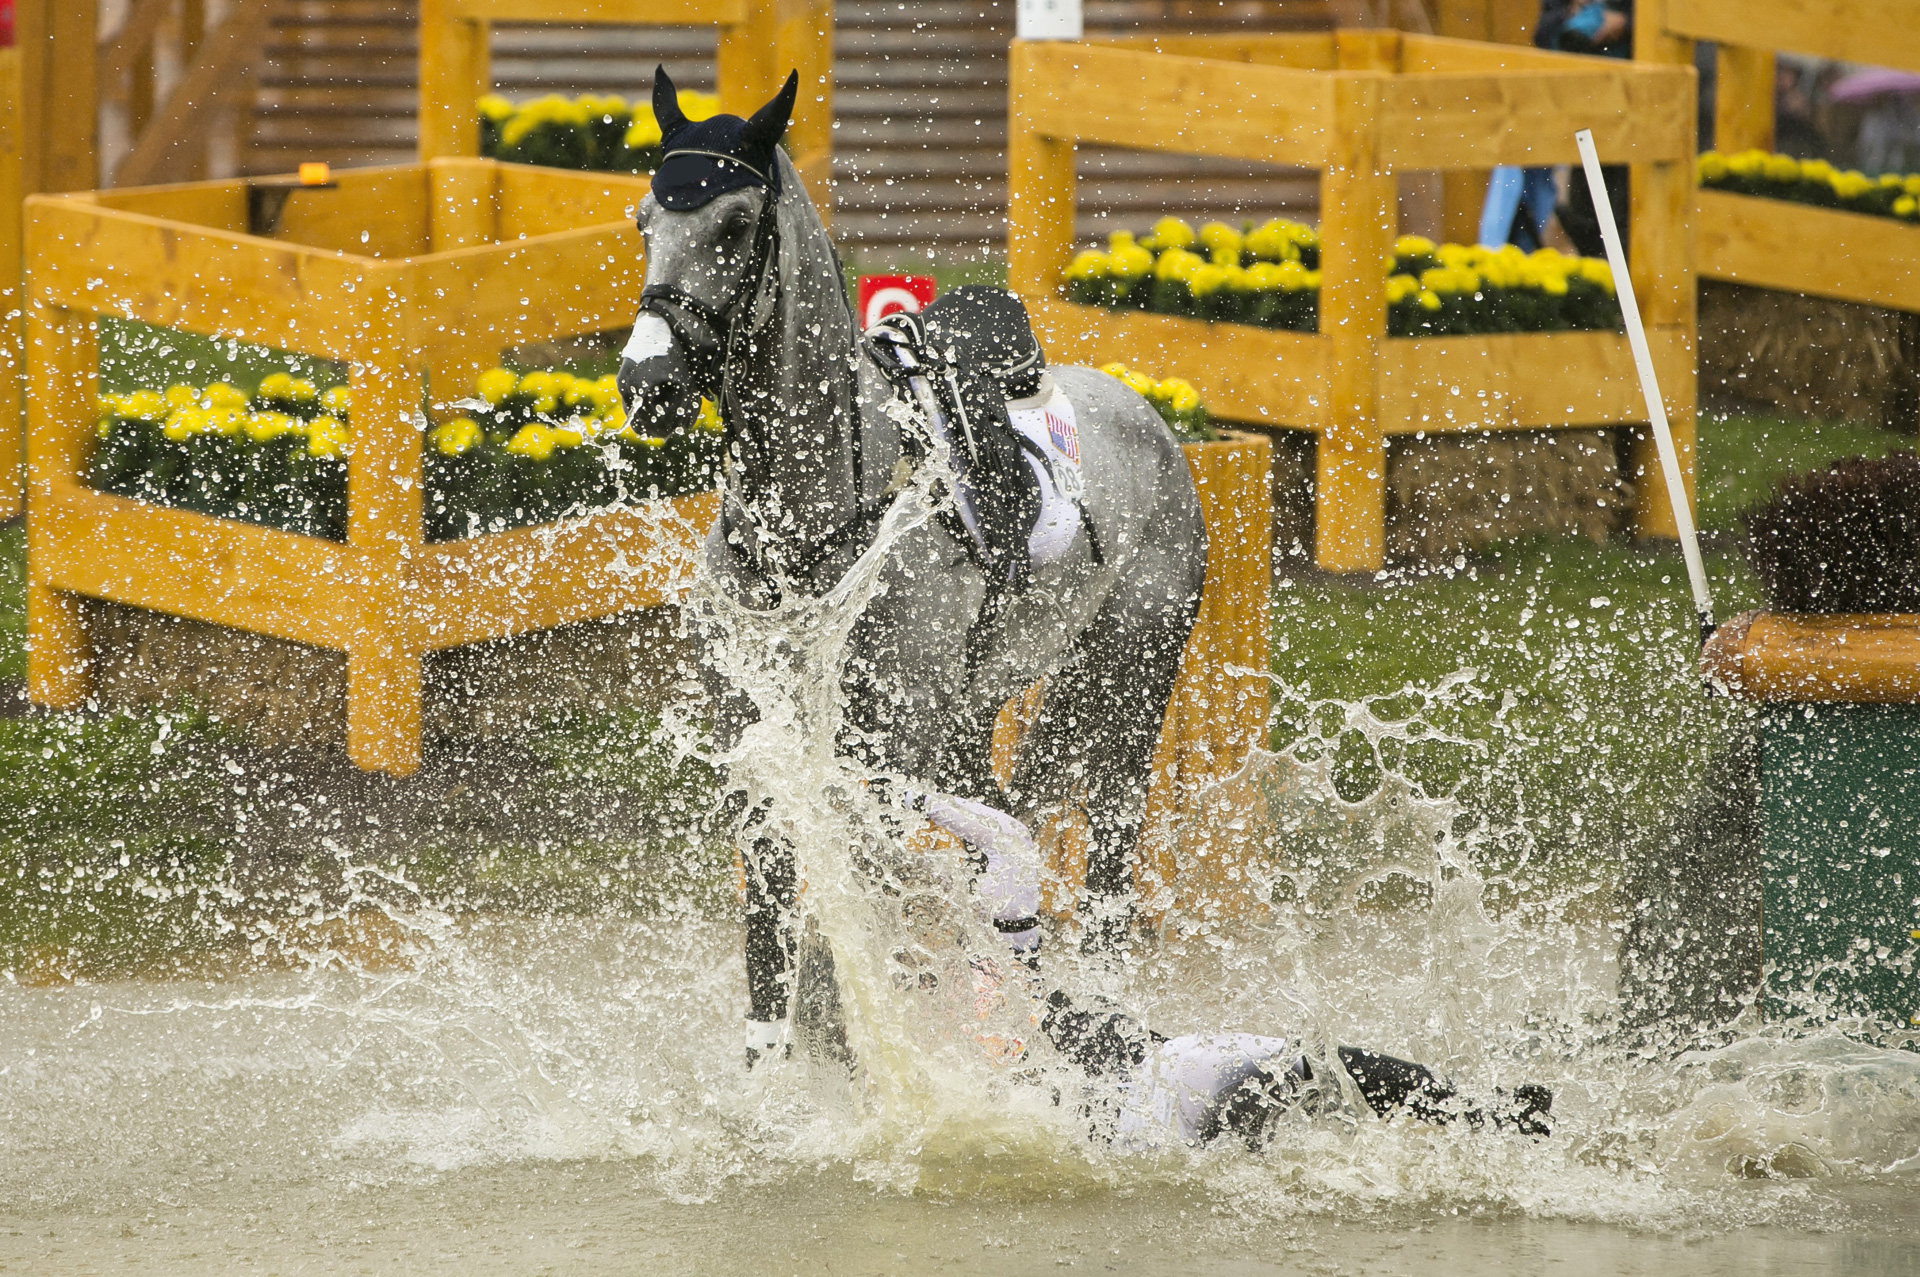 rider-thrown-water-splash.jpg